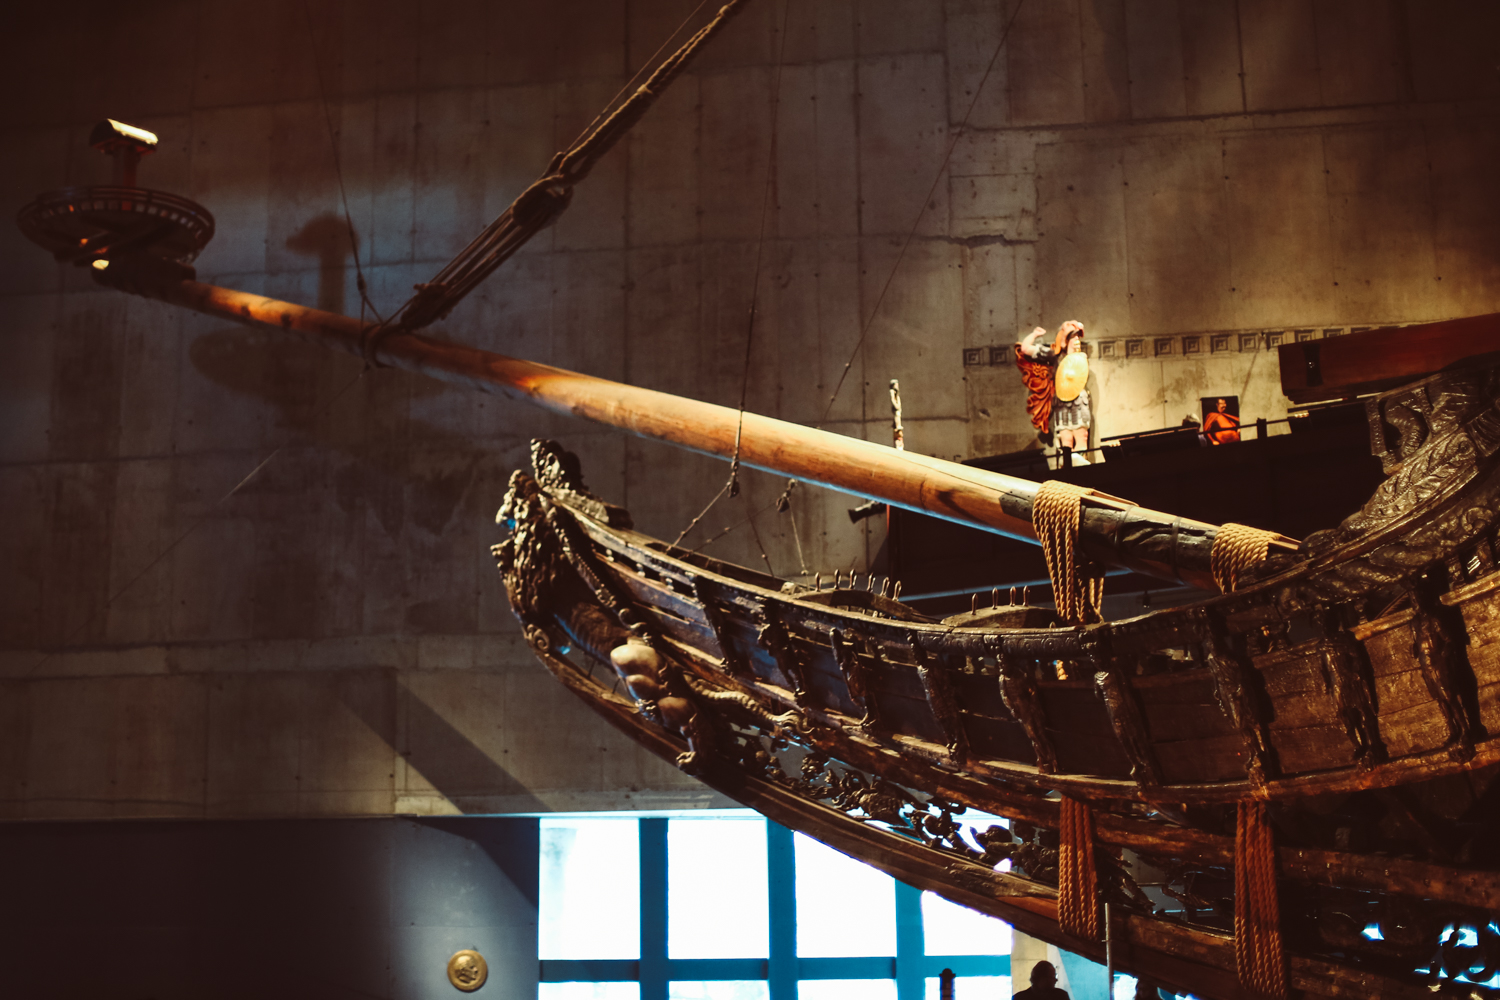 Tickets to Vasa Museum are included in the Stockholm Pass